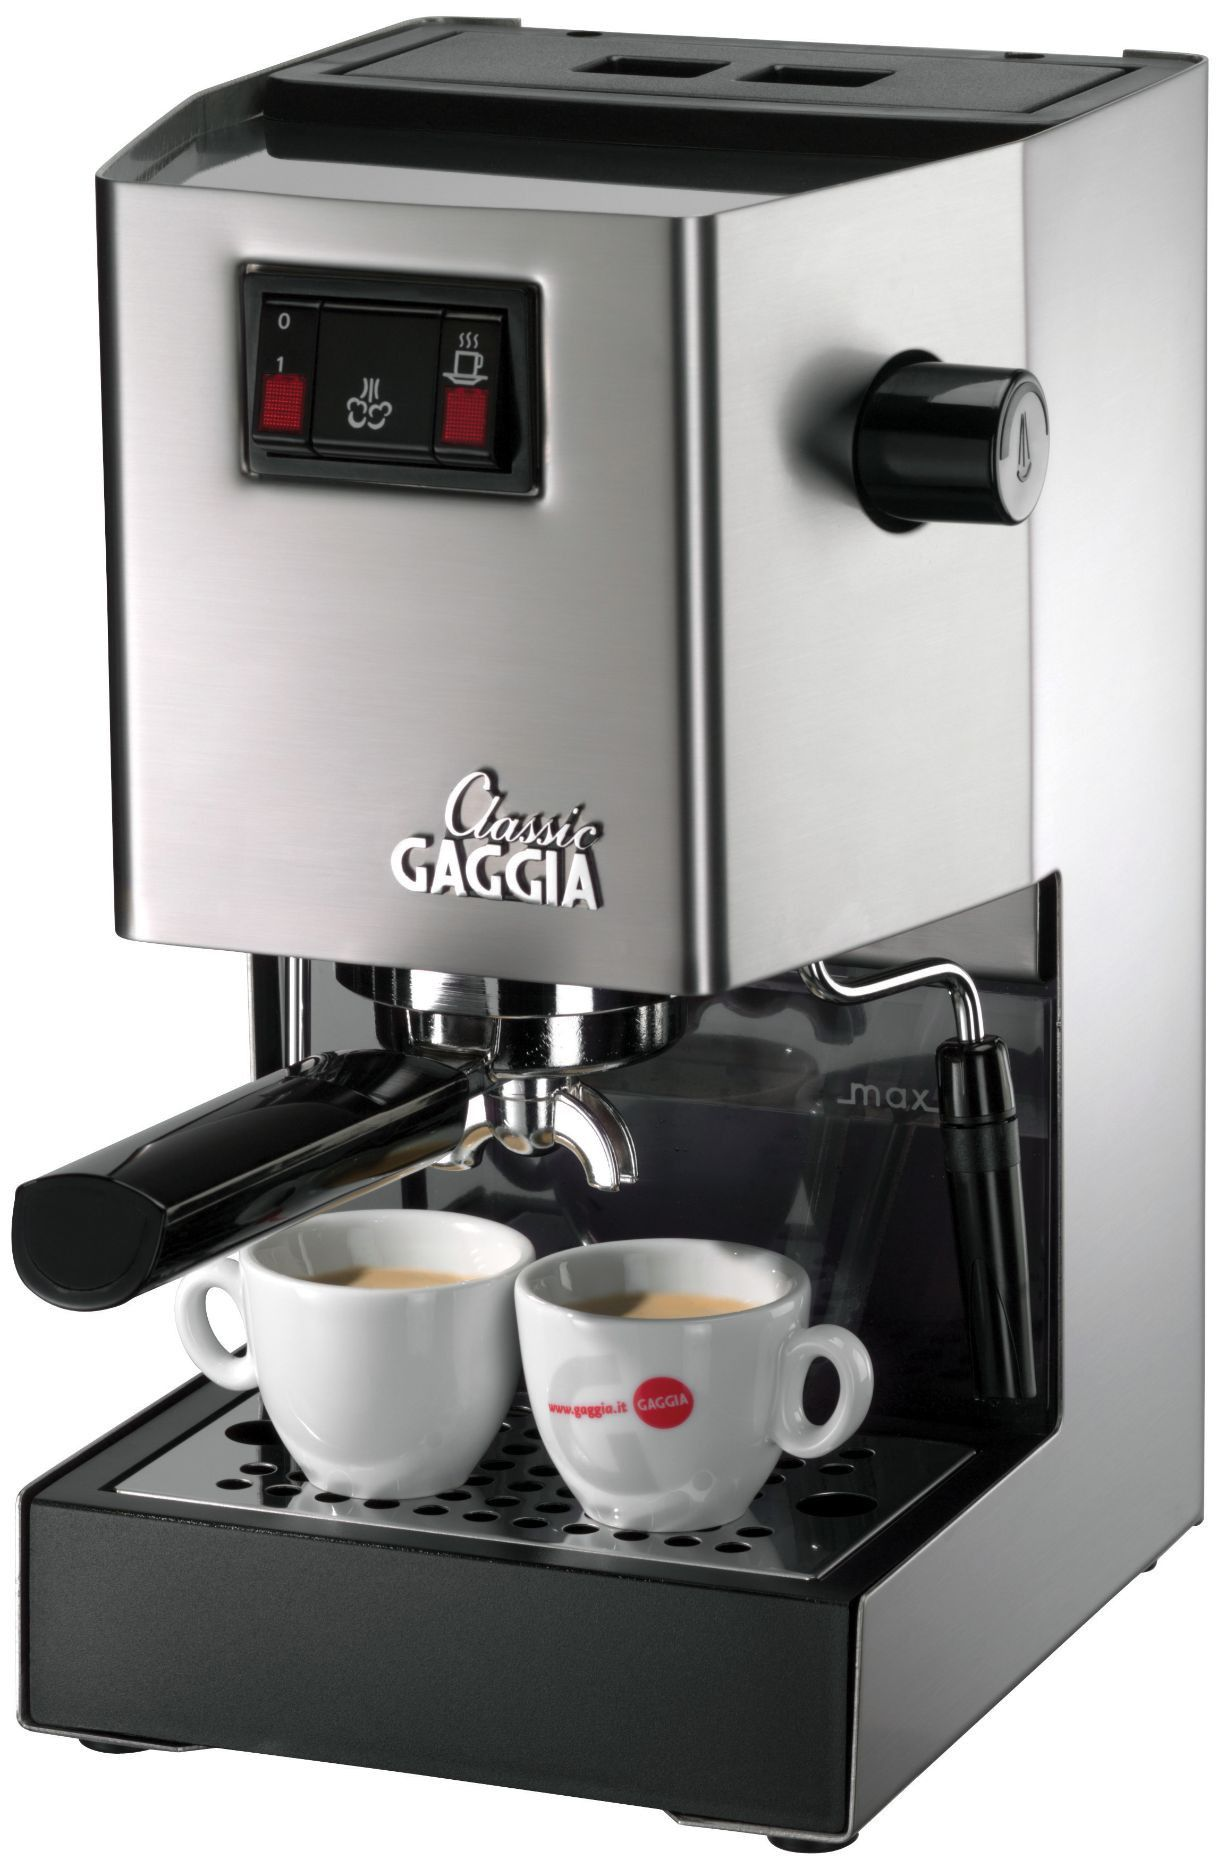 The ALL NEW Gaggia Classic 2019 9480/11 Эспрессо